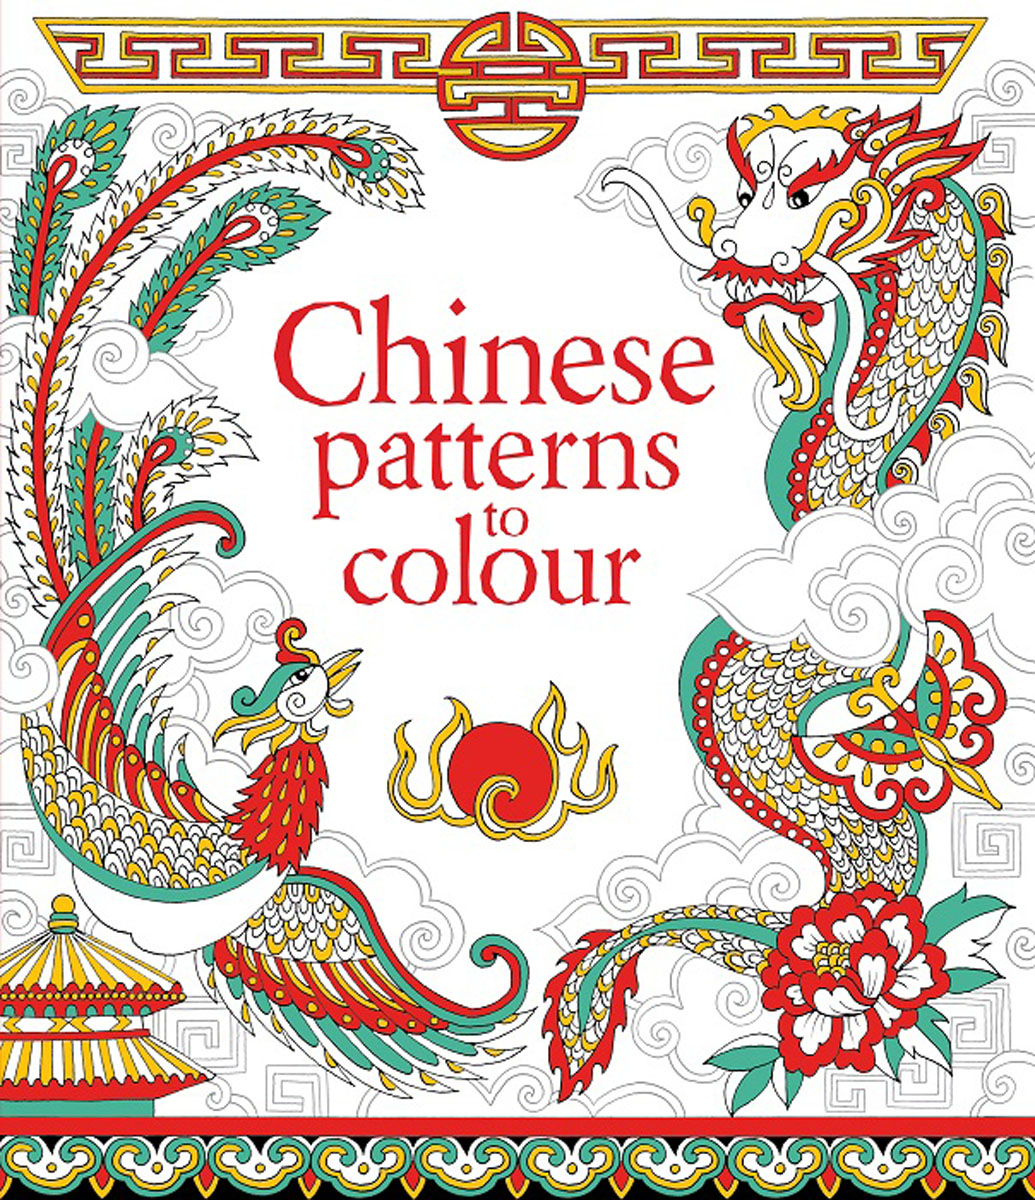 Chinese Patterns to Colour patterns to colour